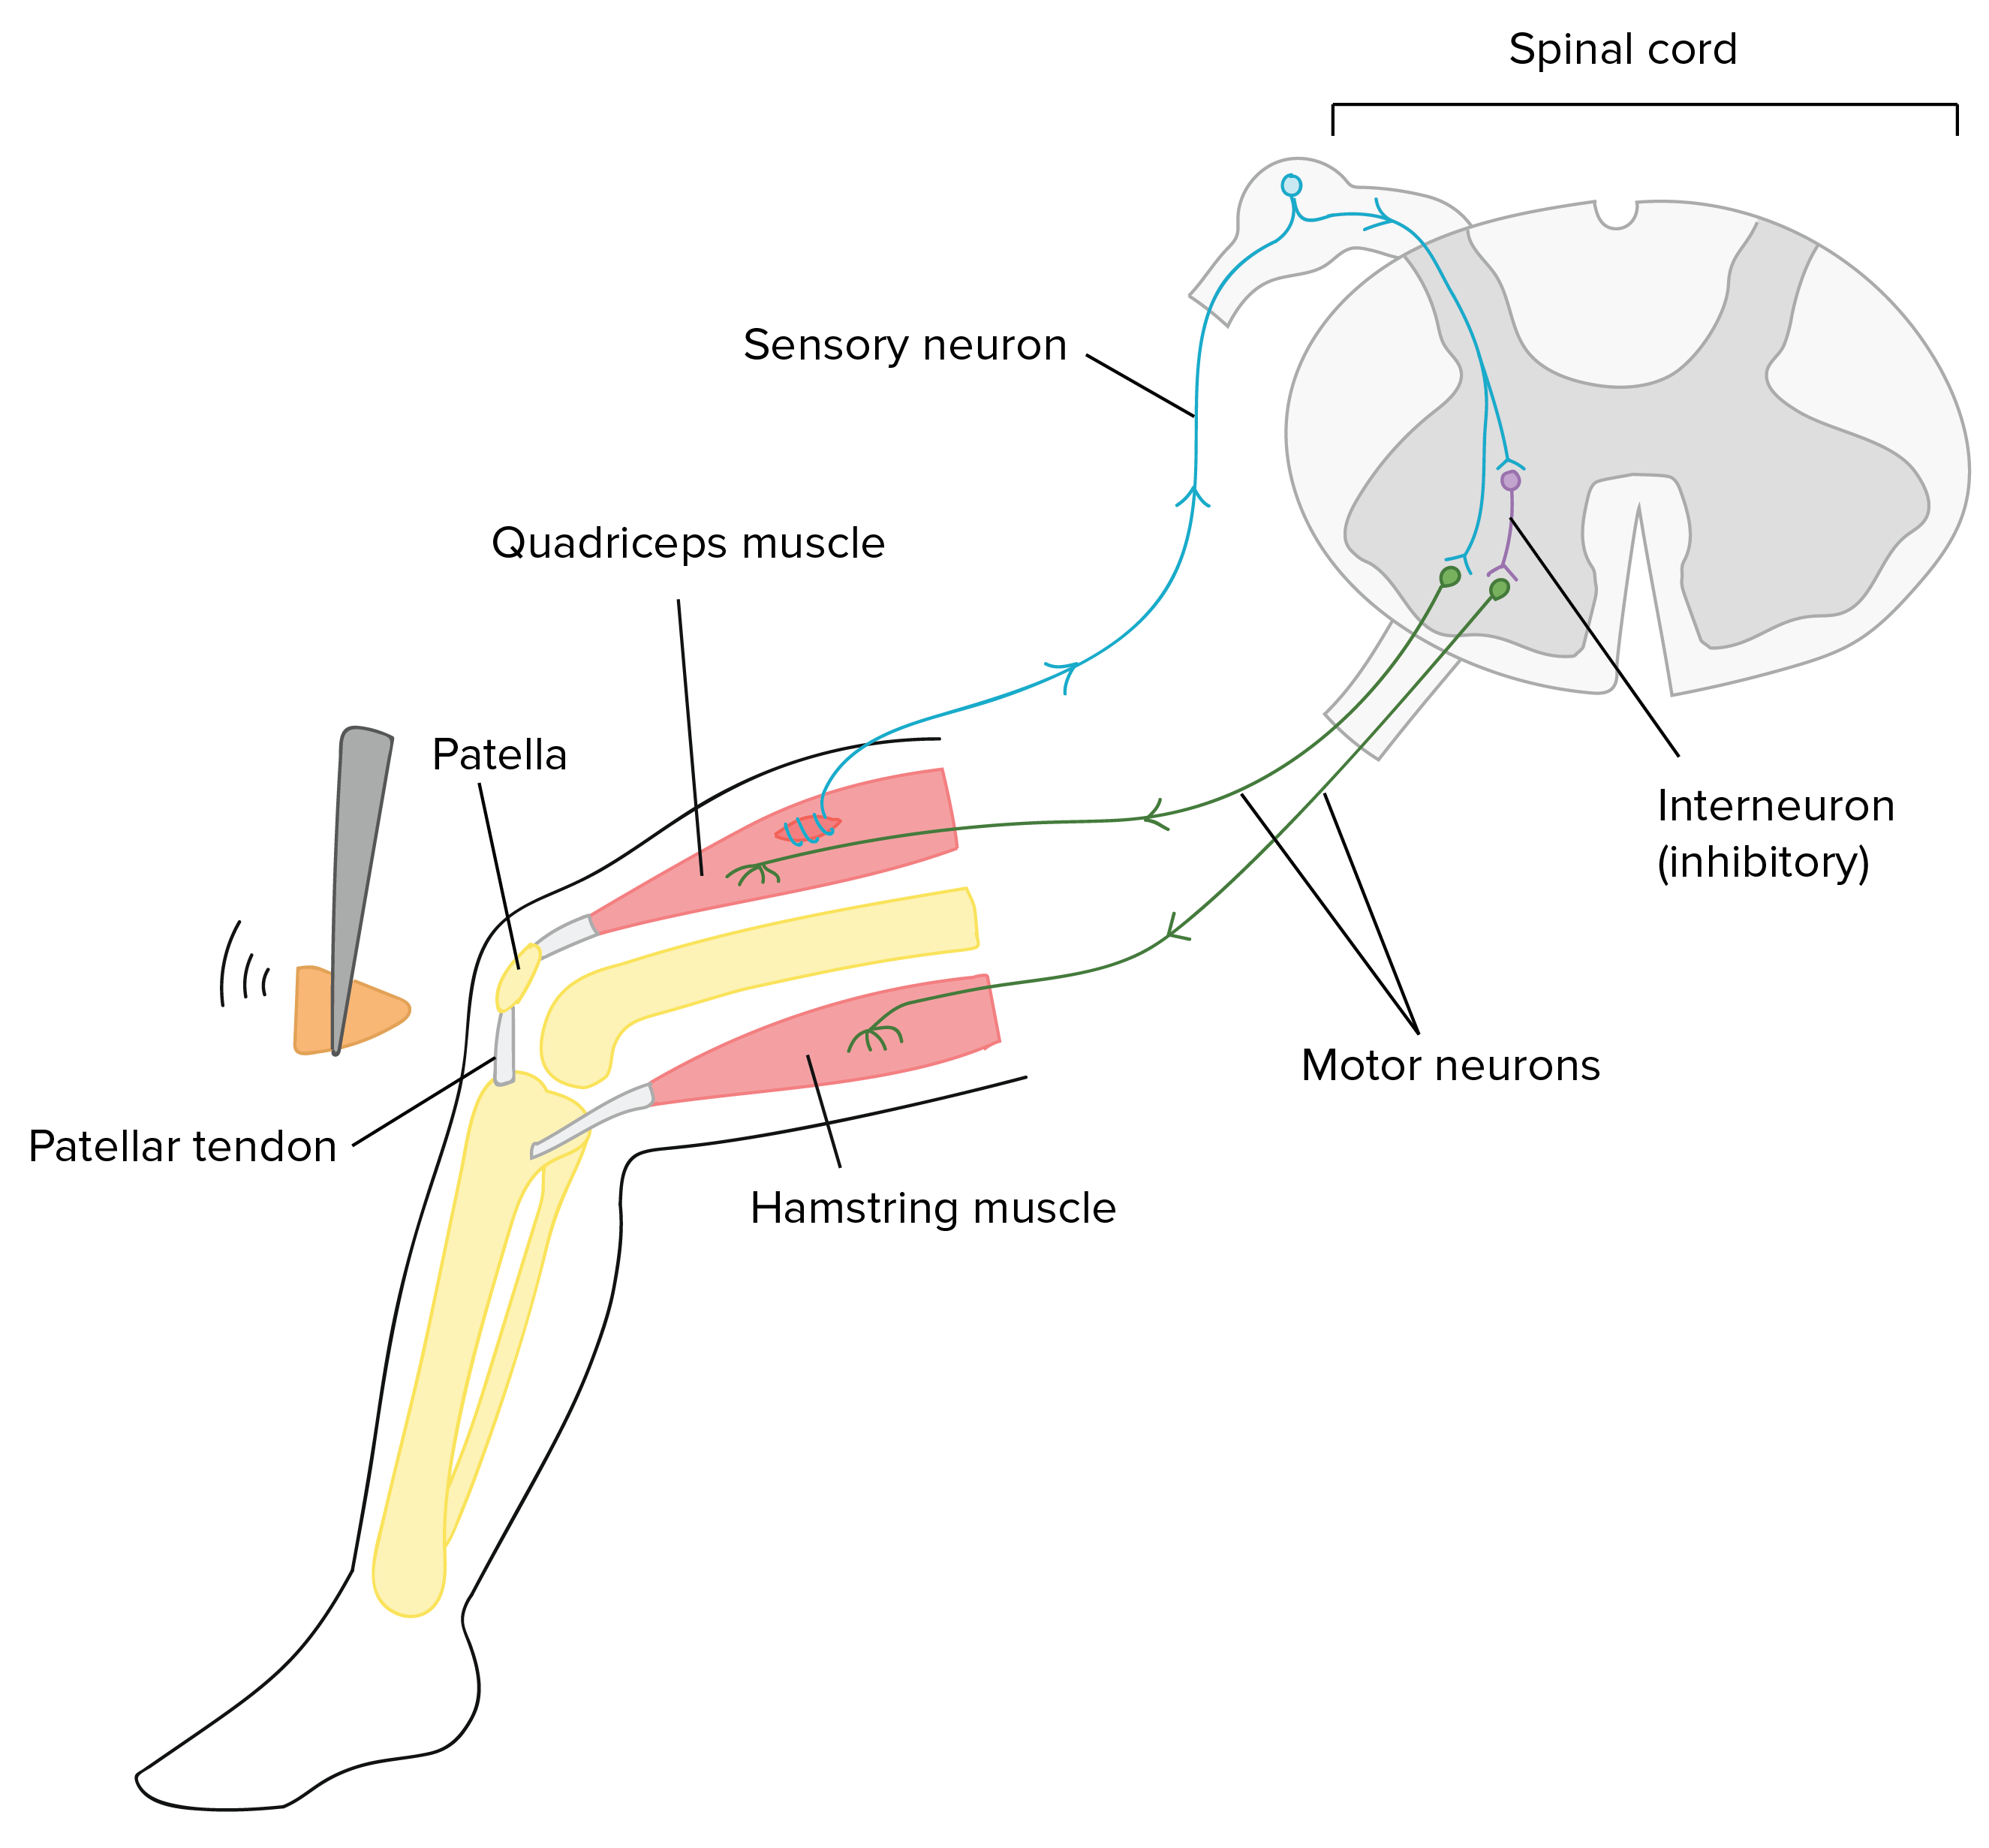 How muscle similation activates inhibitory interneurons using Knee-jerk reflex example